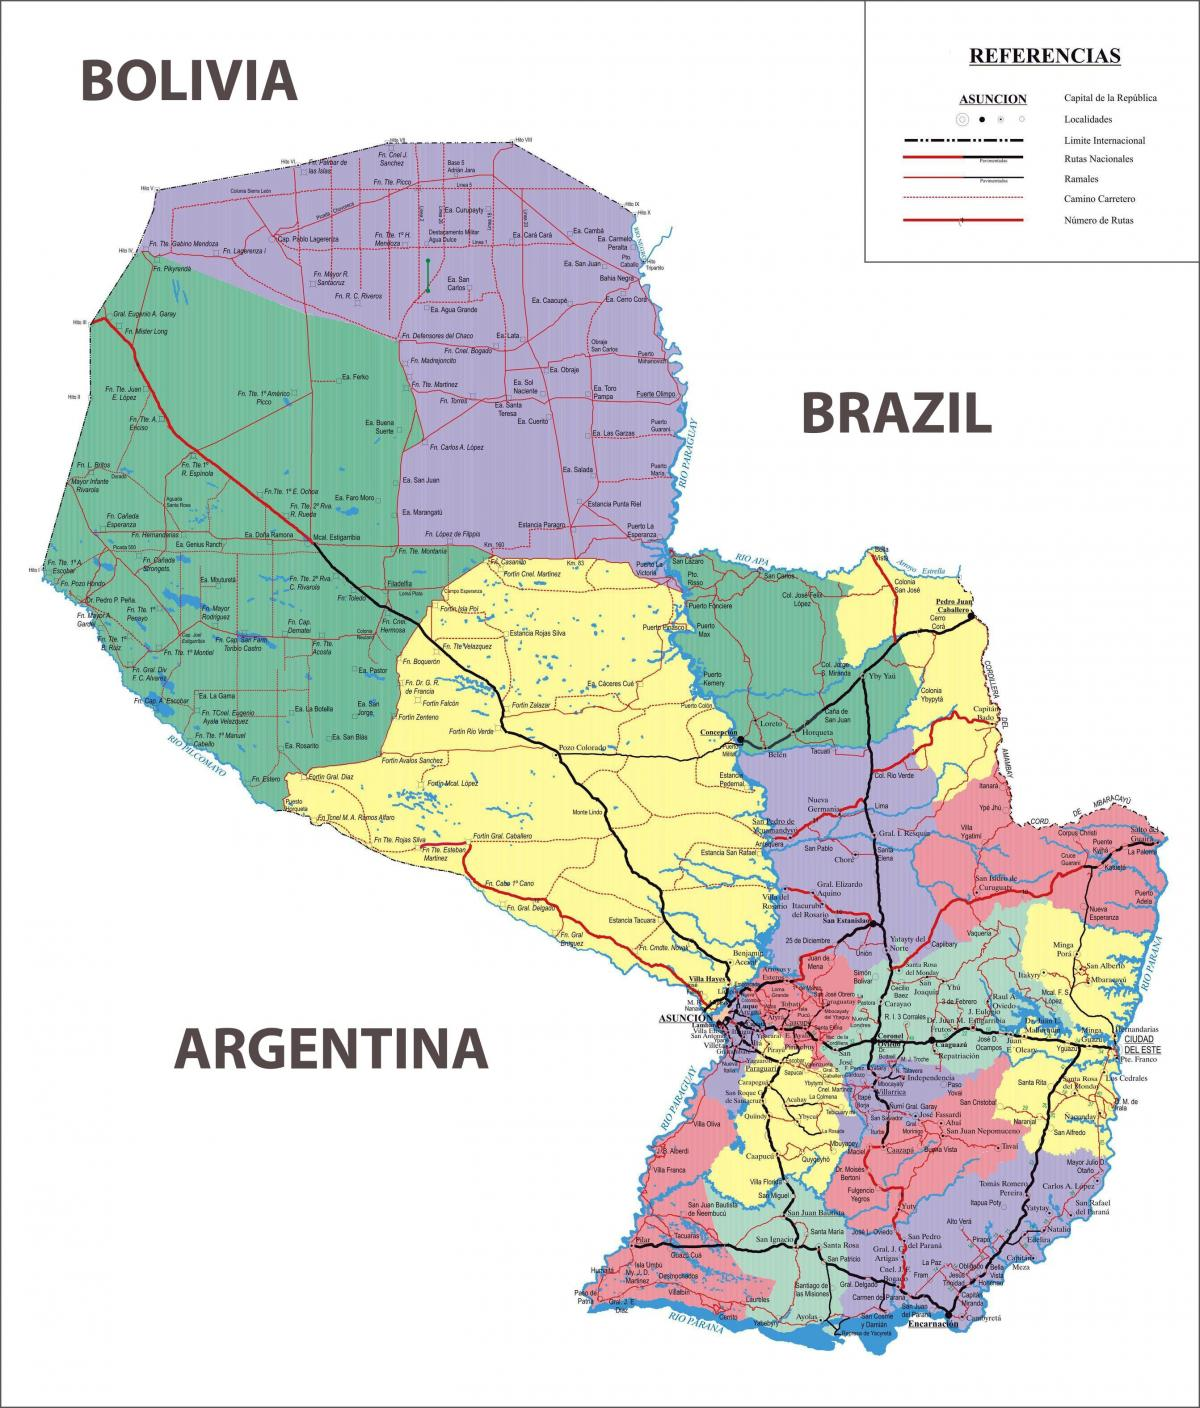 the map of Paraguay